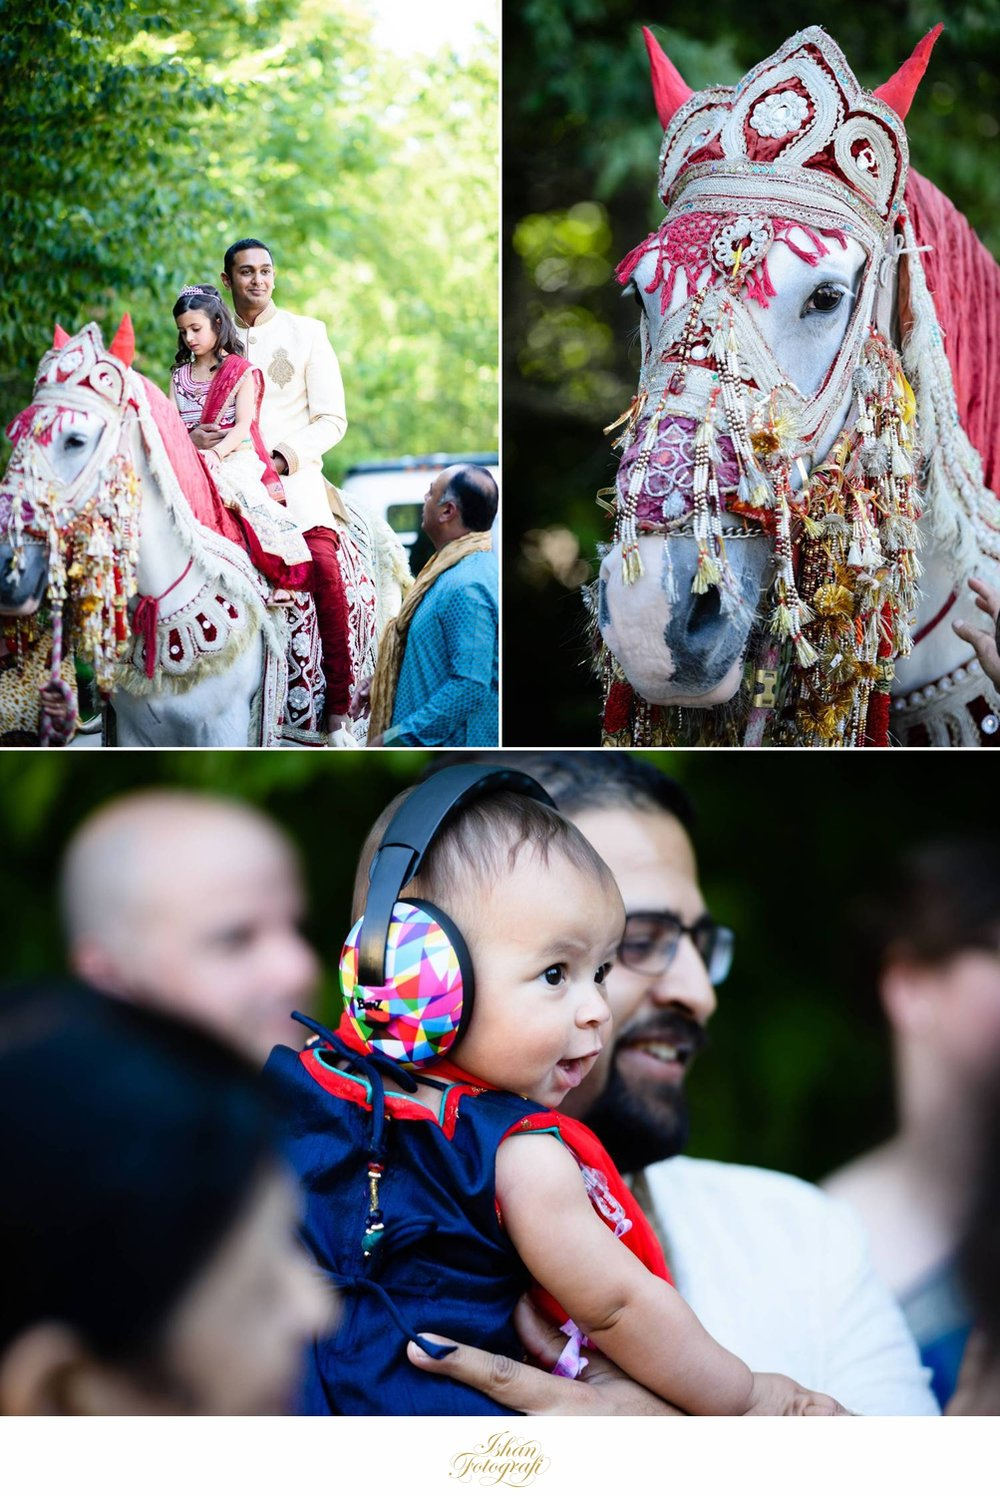 Indian baraat typically have a horse which is ridden by the groom to be. Elephants are another choice of animals used during baraat